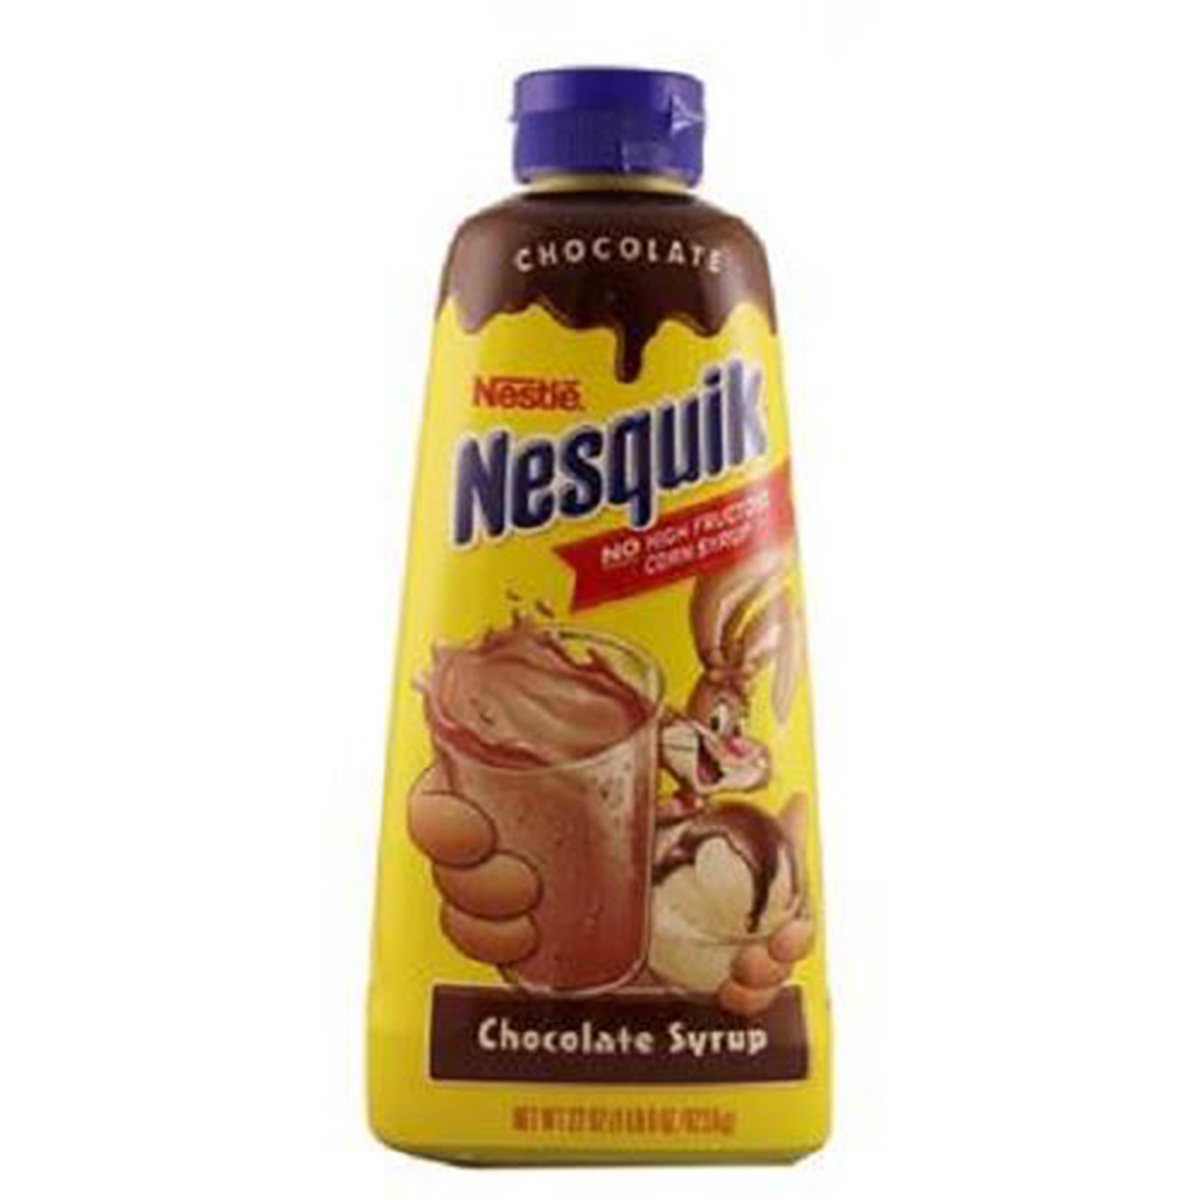 Product Of Nesquik, Chocolate Syrup, Count 1 - Coco & Chocolate Mixes / Grab Varieties & Flavors